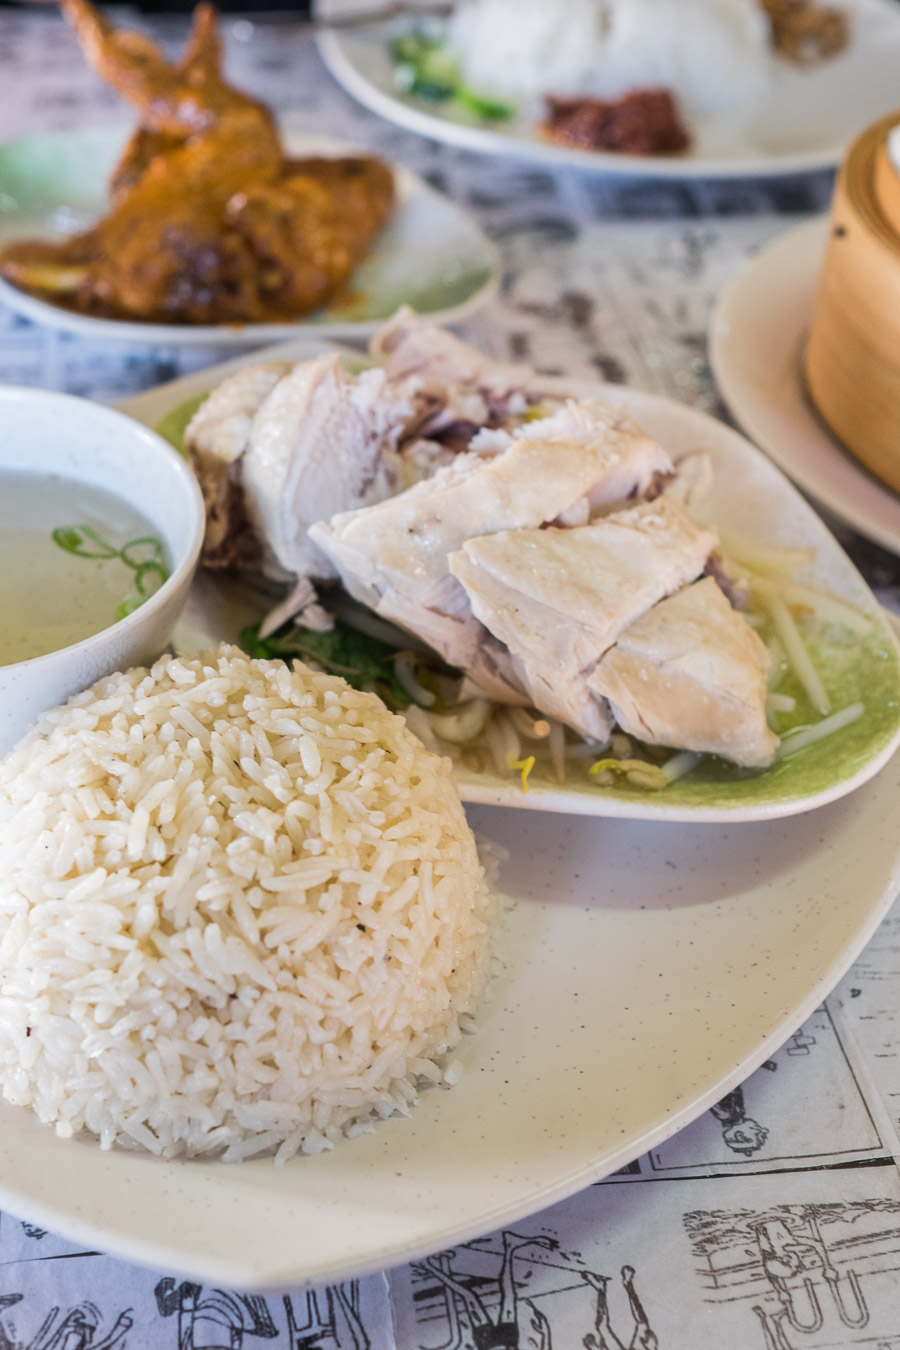 Hainanese chicken rice (AU$11.50)